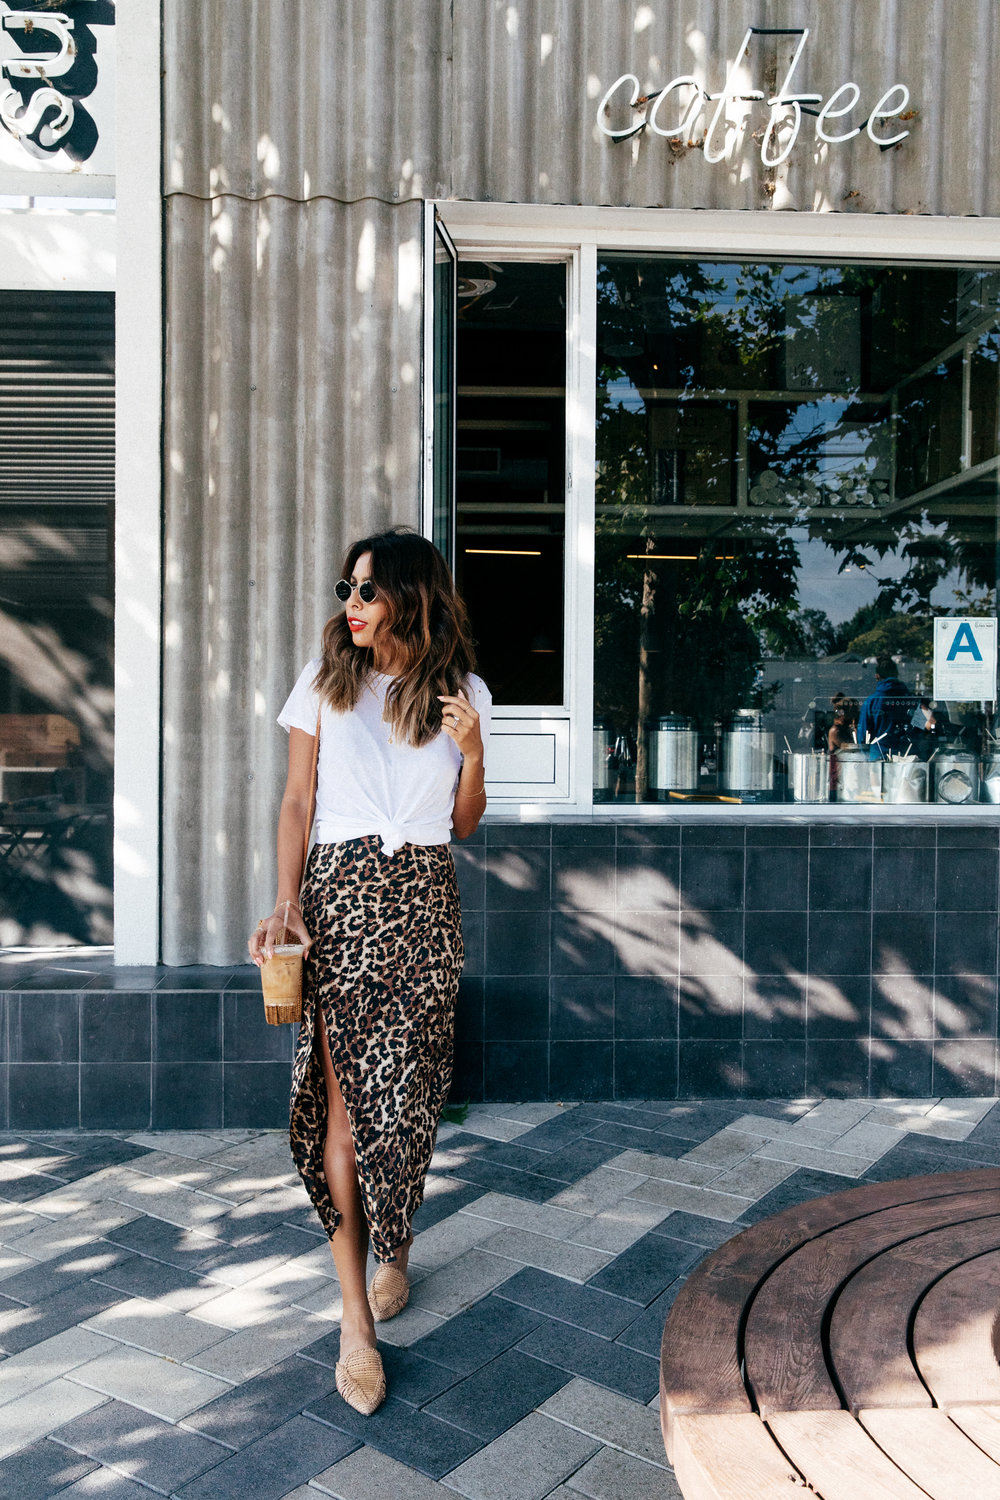 How to style a white tee shirt with slip dress. Endless Summer Leopard Dress.